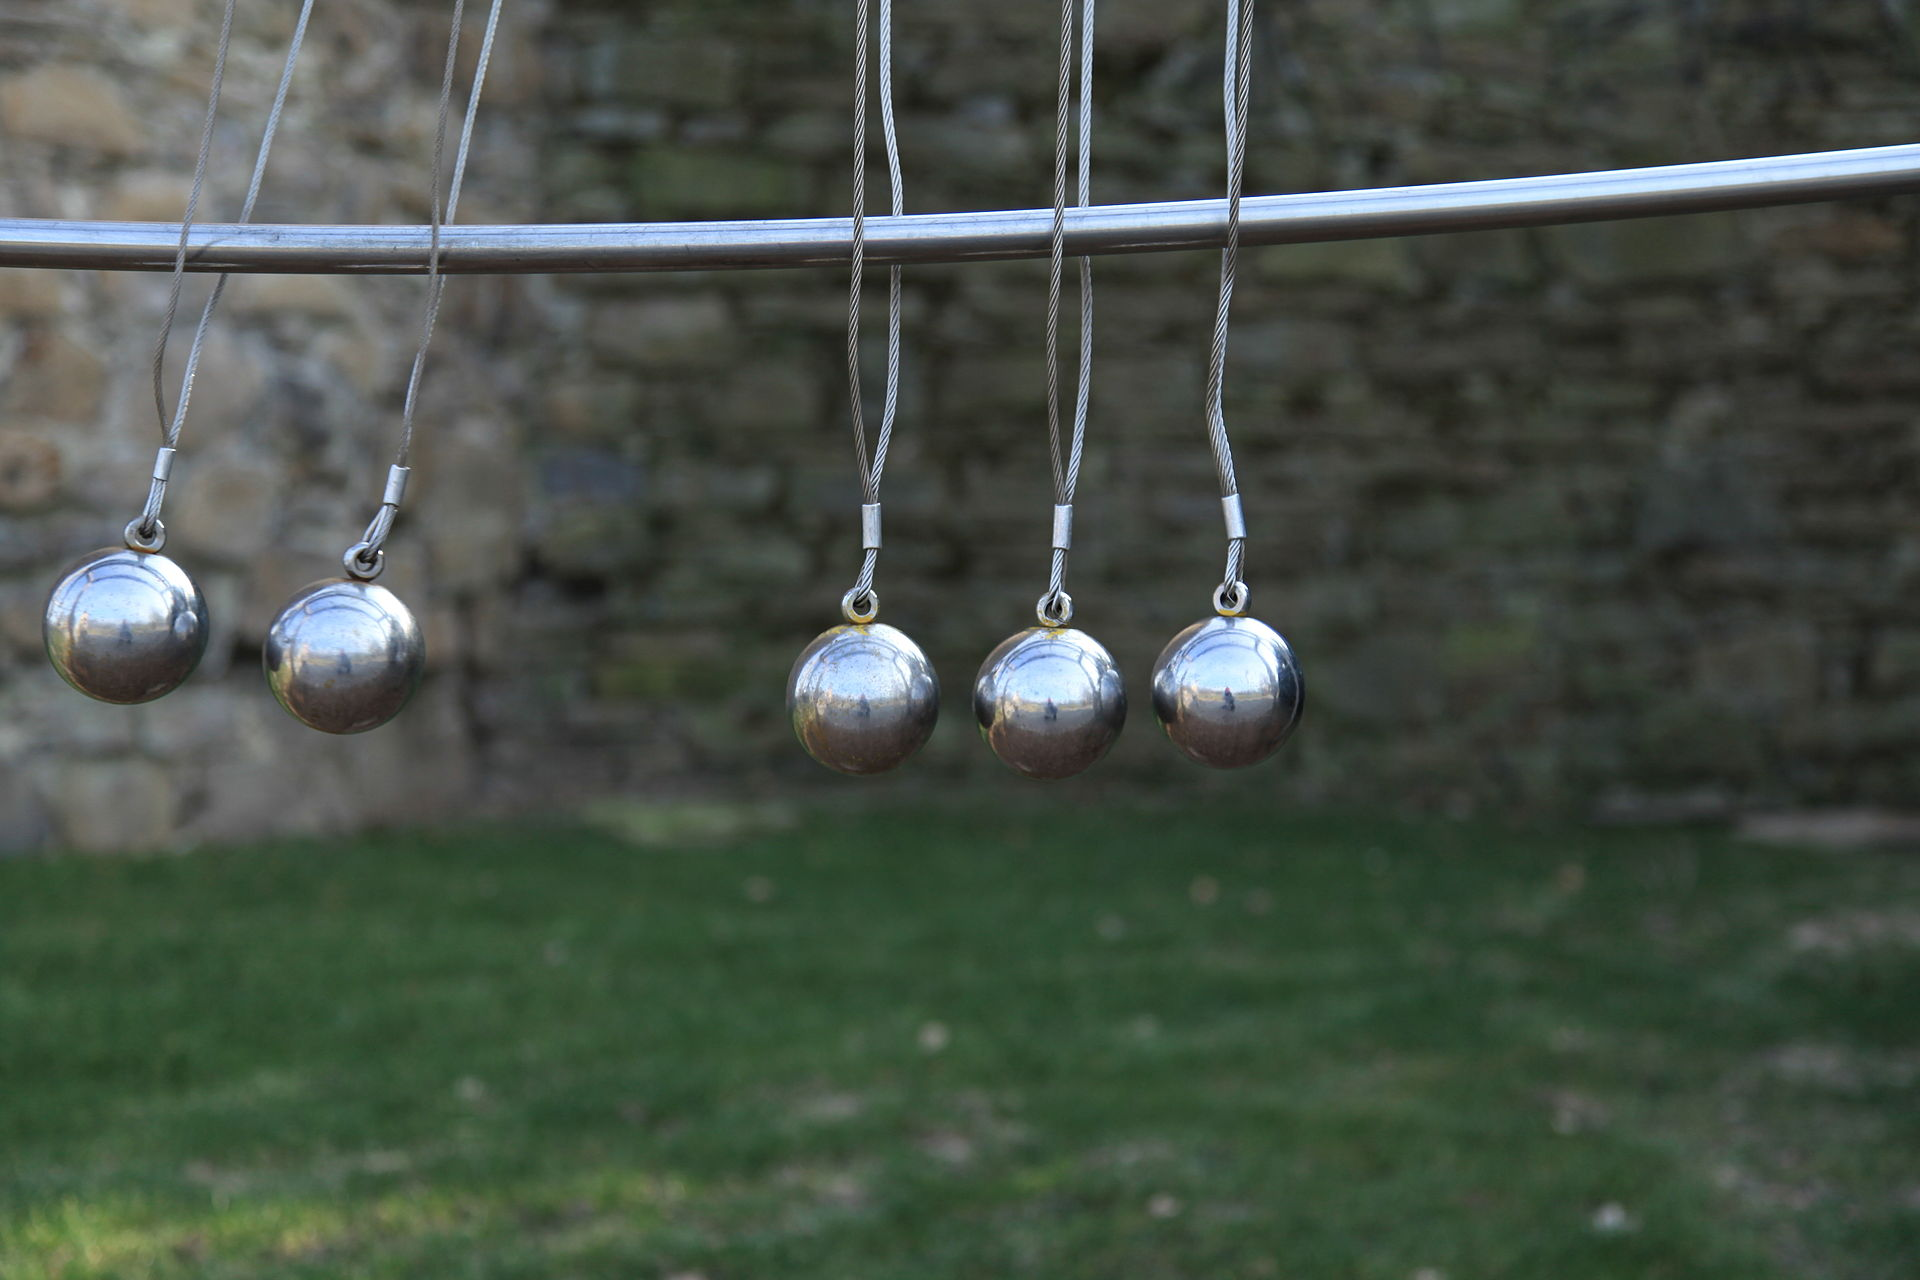 A Newton's Cradle toy in Darlington-Park in Mülheim an der Ruhr. Image credit: Frank Vincentz, CC BY SA 3.0